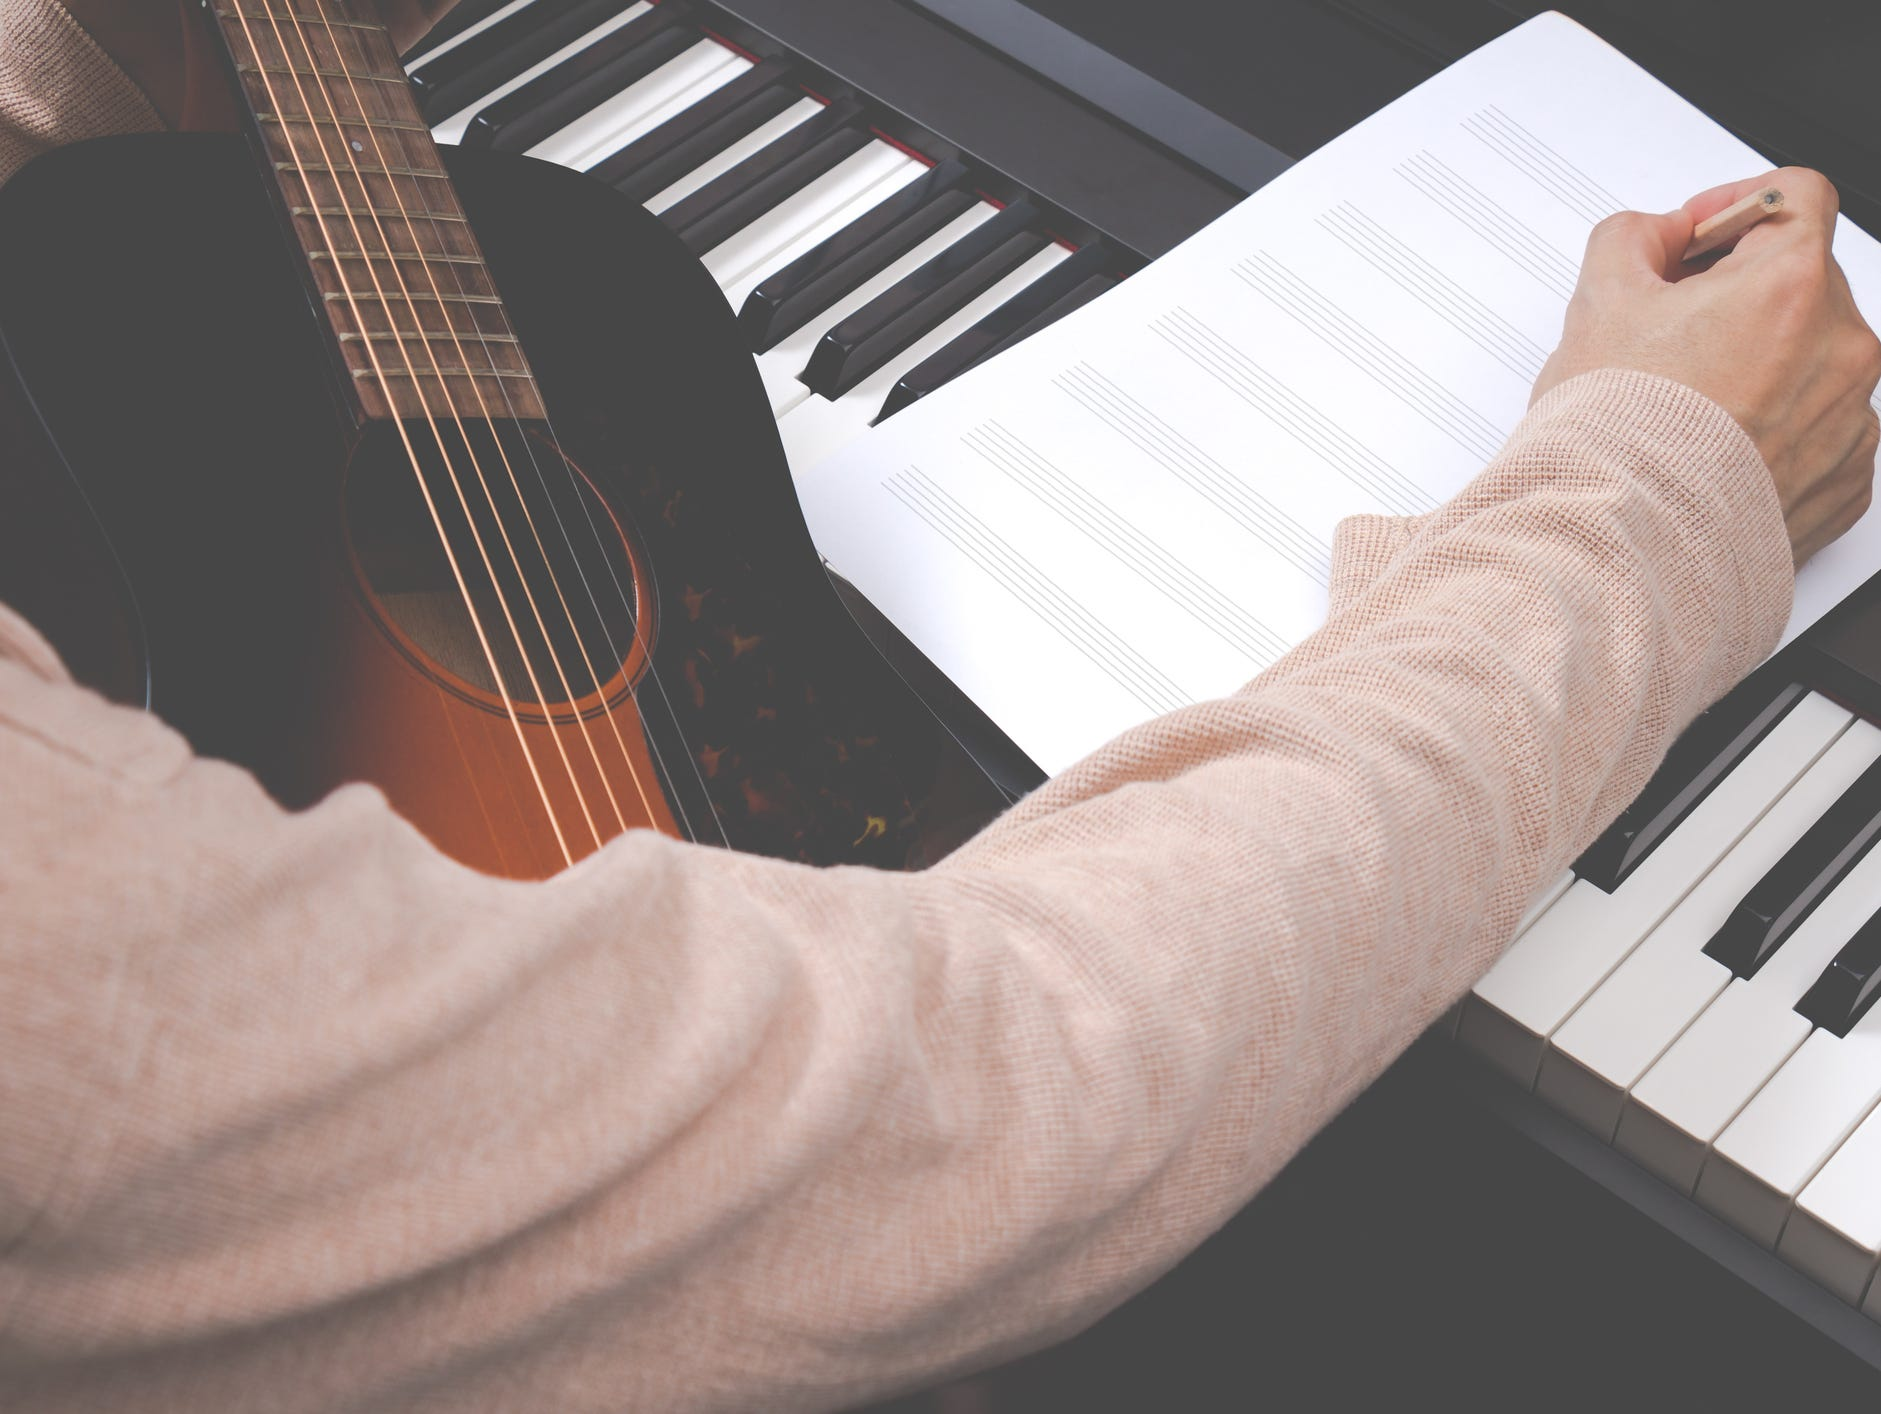 Afour-week course for intermediate or advancedsongwriterstaught by a Nashville industry professional and recording artist.